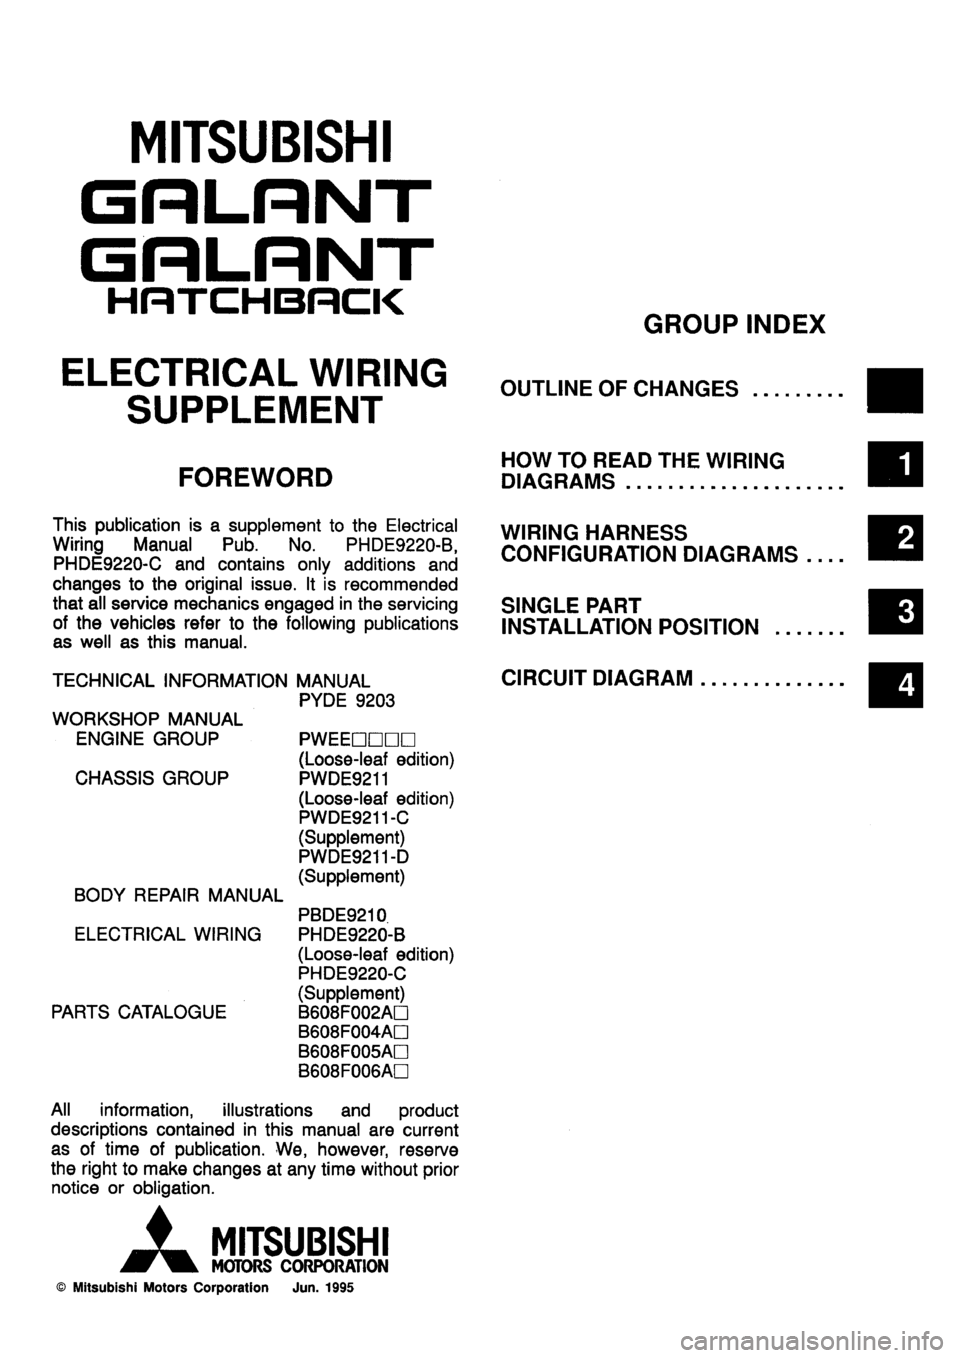 Mitsubishi Galant 1996 7g Electrical Wiring Diagram Workshop Manual 4g63 Wire Data Schema